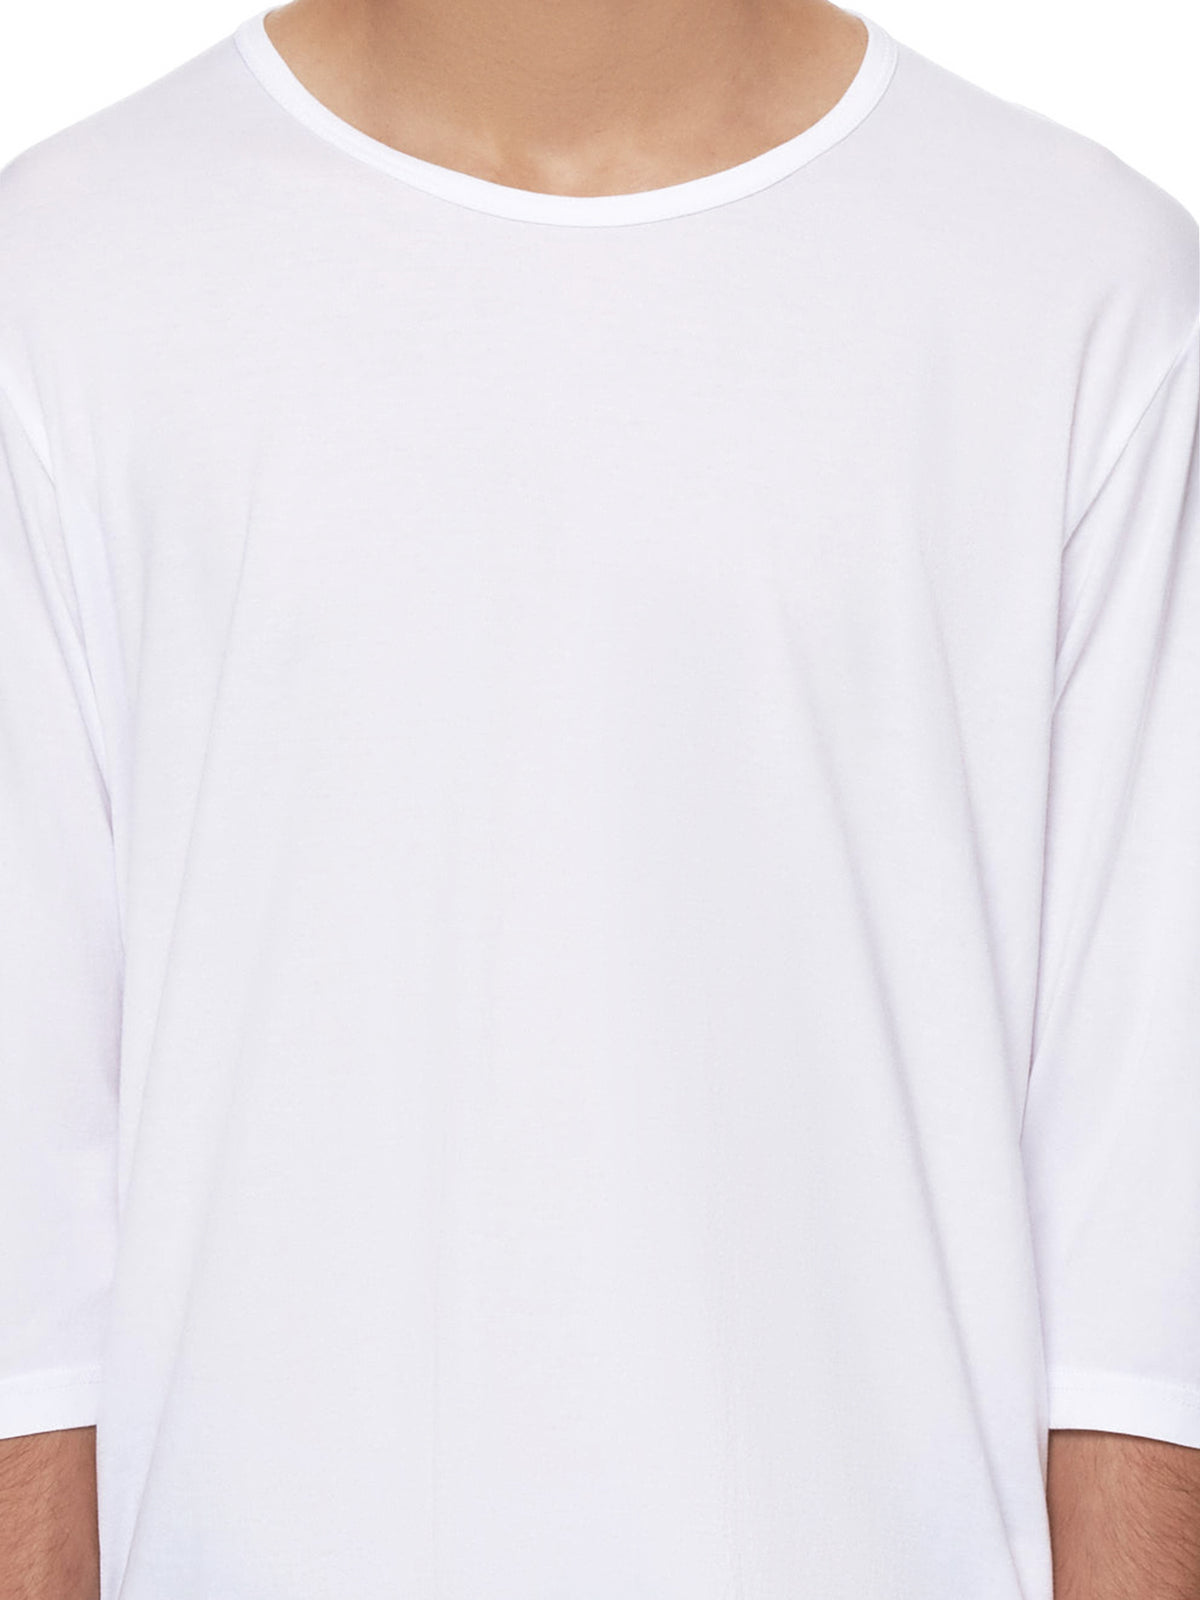 Basic T-Shirt (KJ91-014-WHITE)